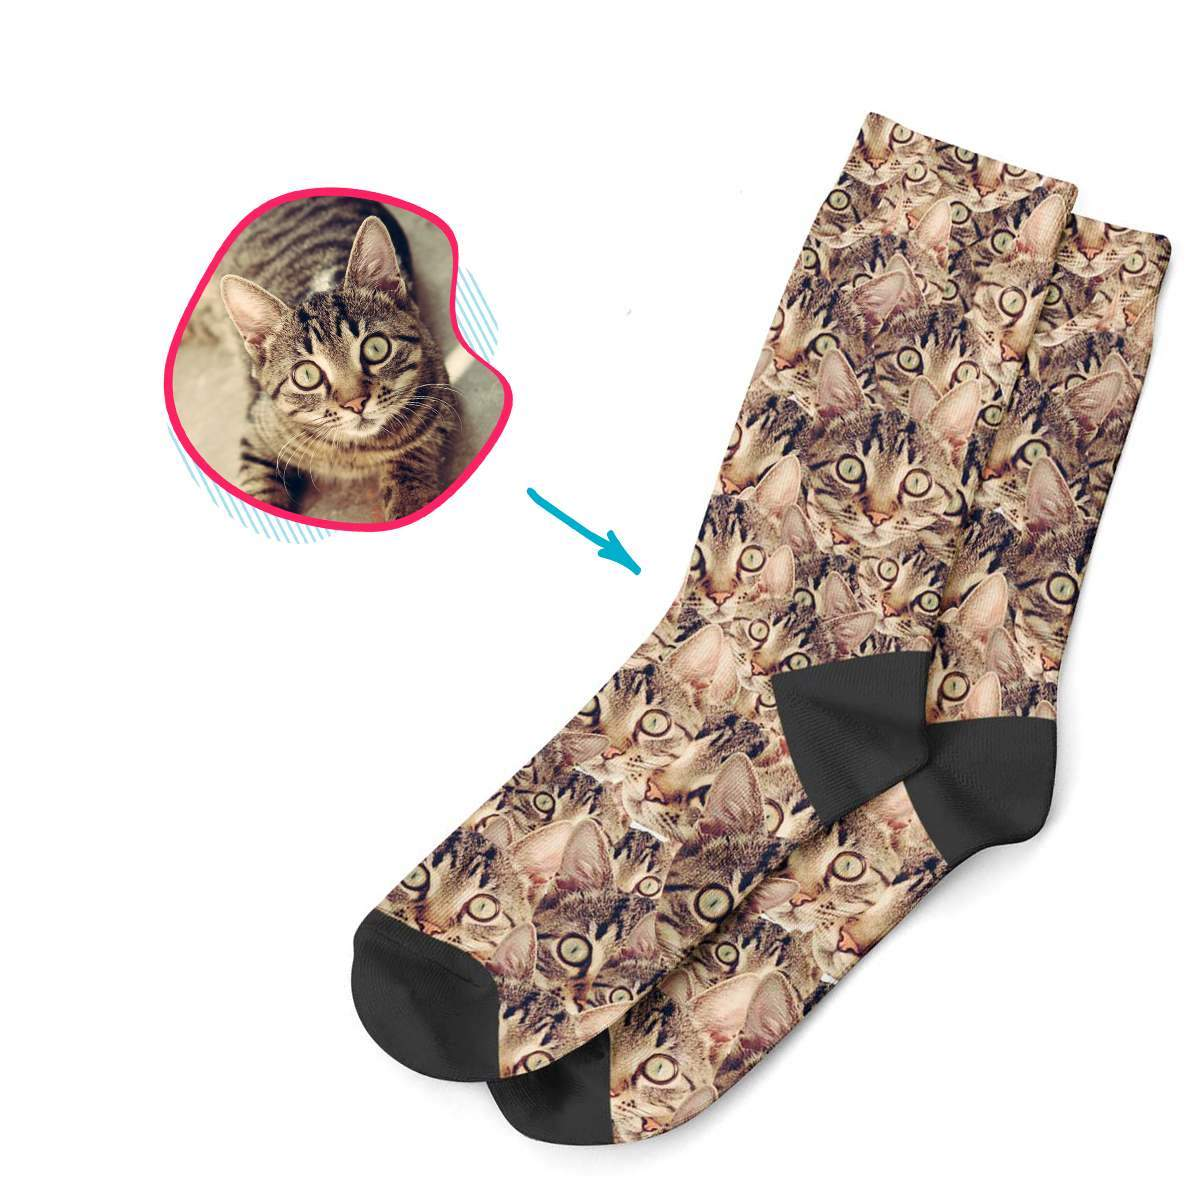 Cat Mash socks personalized with photo of face printed on them